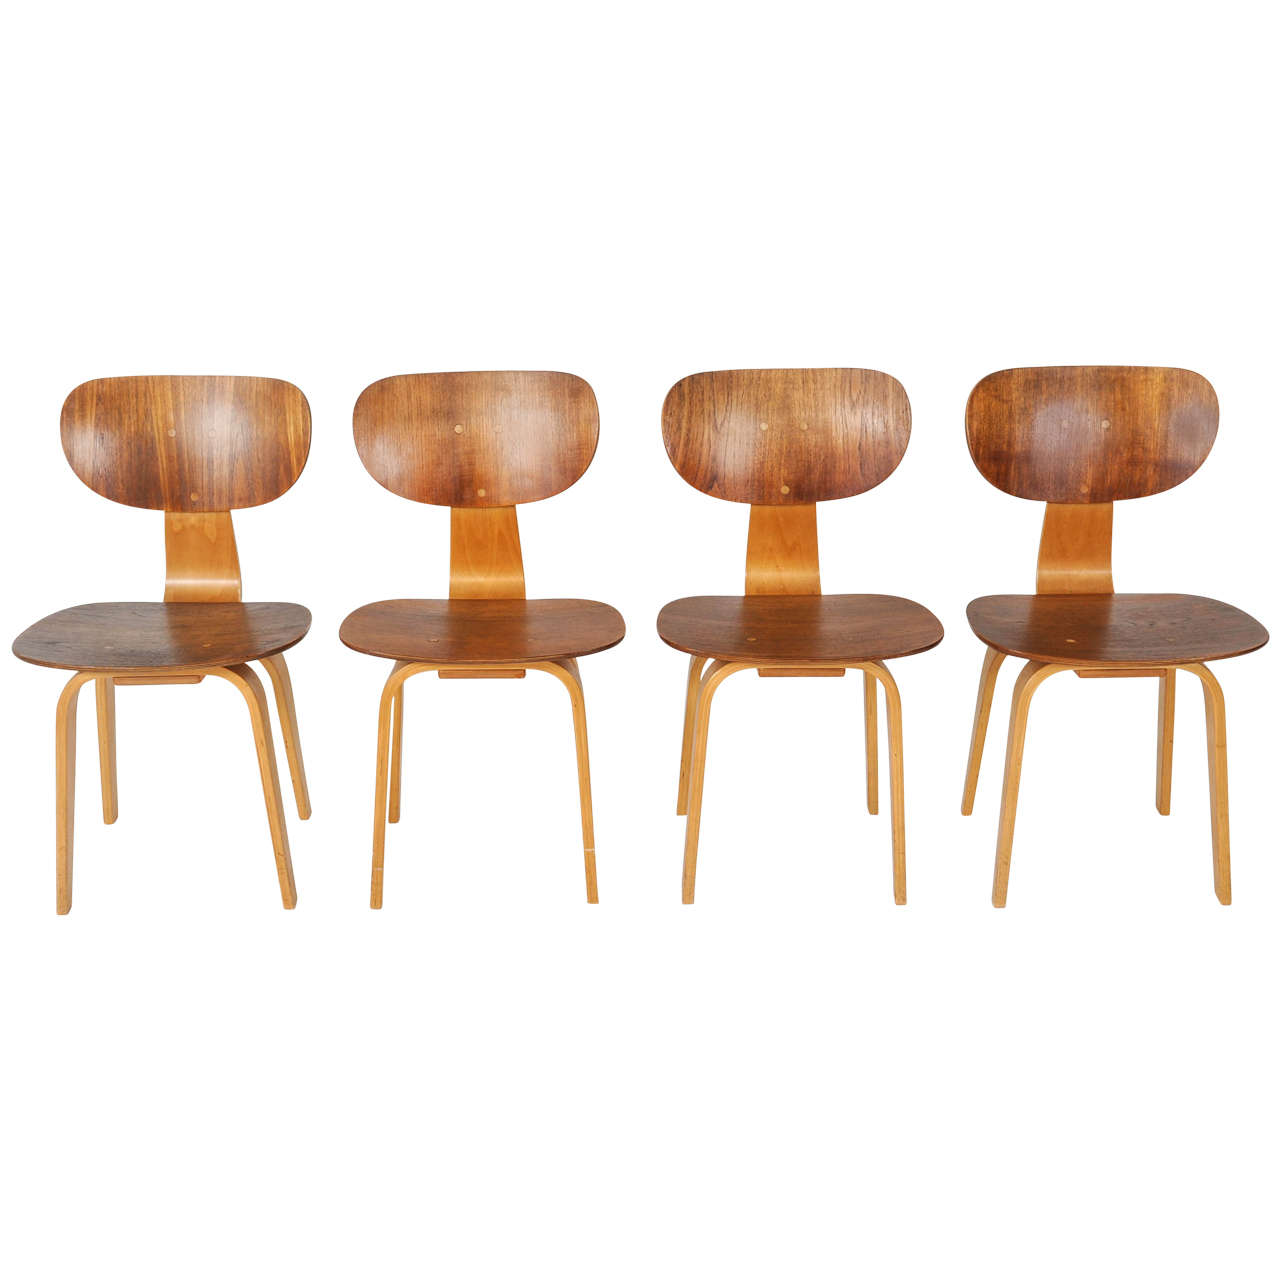 Set of 4 Cees Braakman for Pastoe Dining Chairs, Model SB13, Combex Series